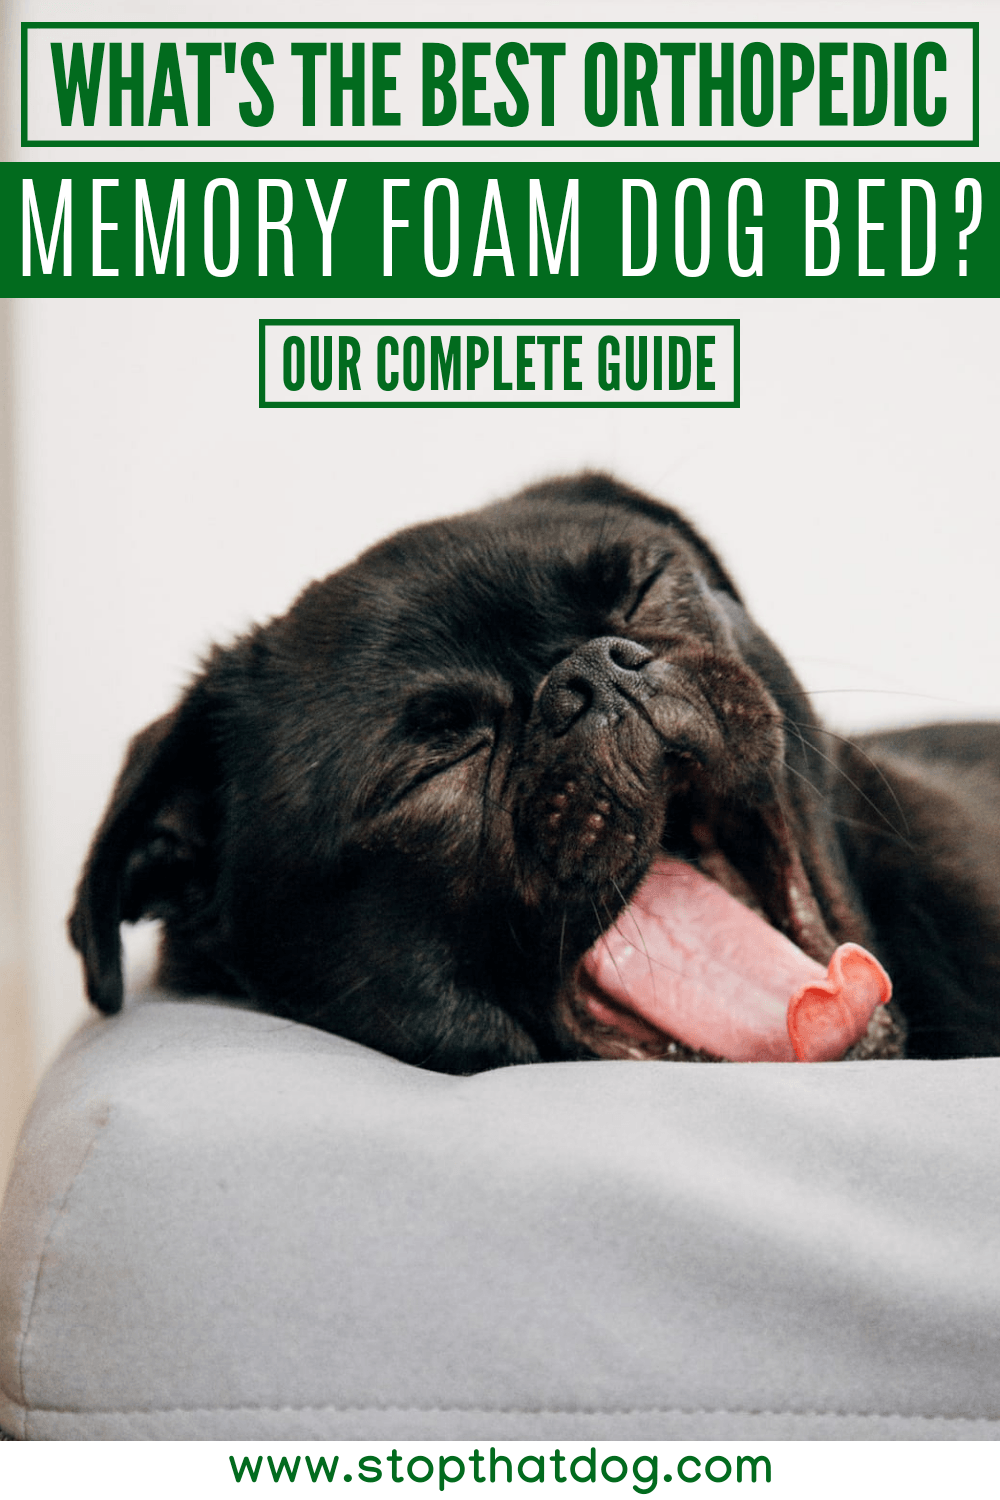 What's The Best Orthopedic Memory Foam Dog Bed? Our Complete Guide